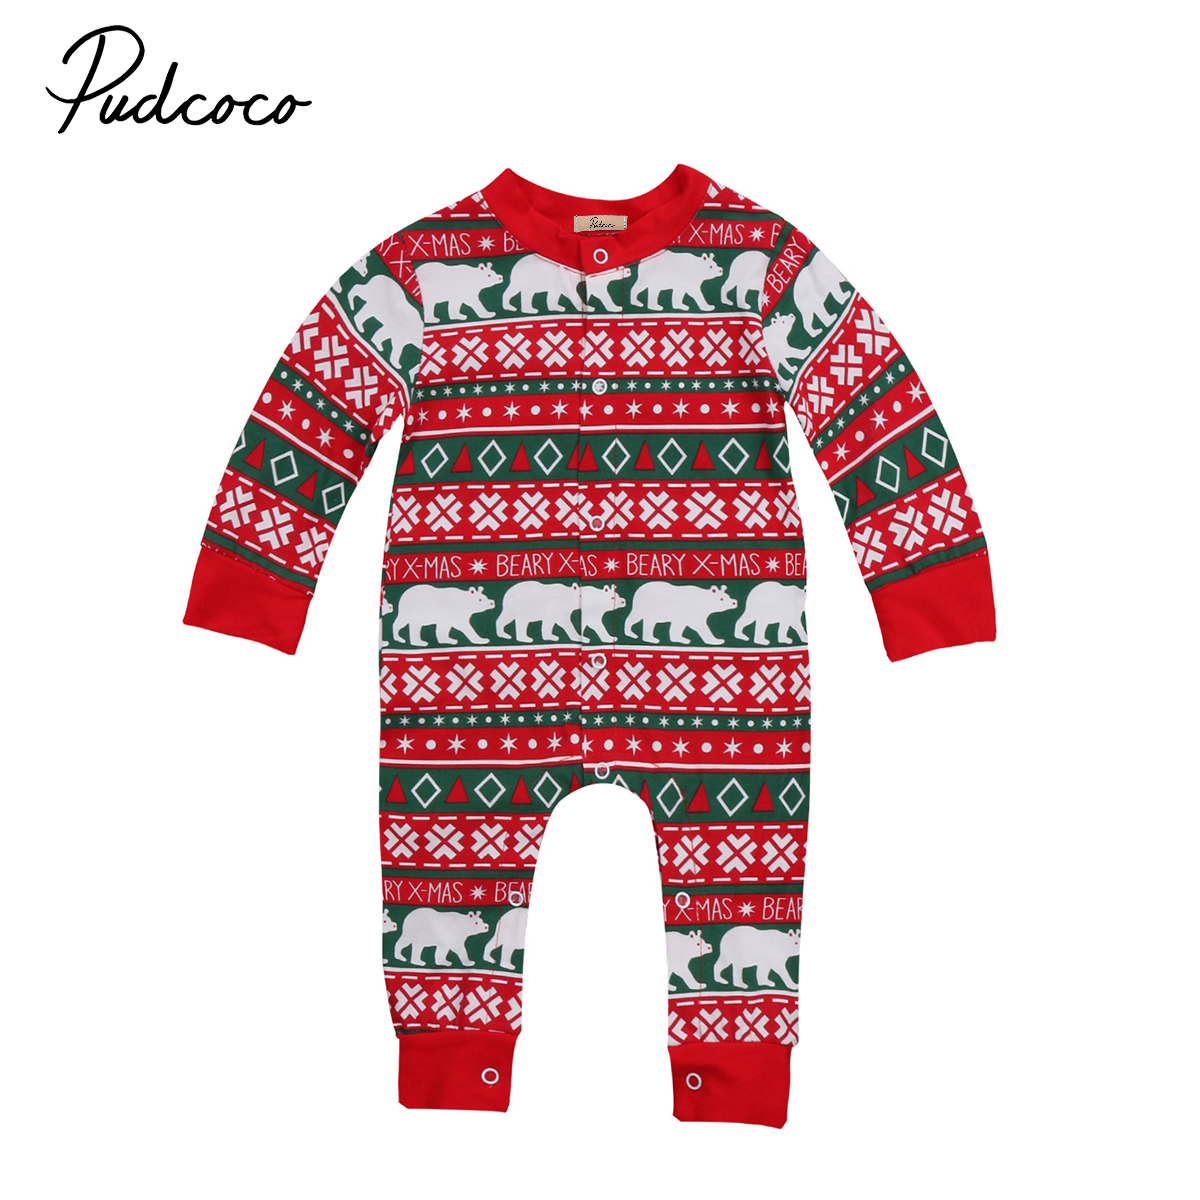 Autumn Winter Warm Newborn Baby Long Sleeve Rompers Christmas Romper Infant Boy Girl Jumpsuit Kids Clothes Outfits Age 0-24M 2017 new adorable summer games infant newborn baby boy girl romper jumpsuit outfits clothes clothing